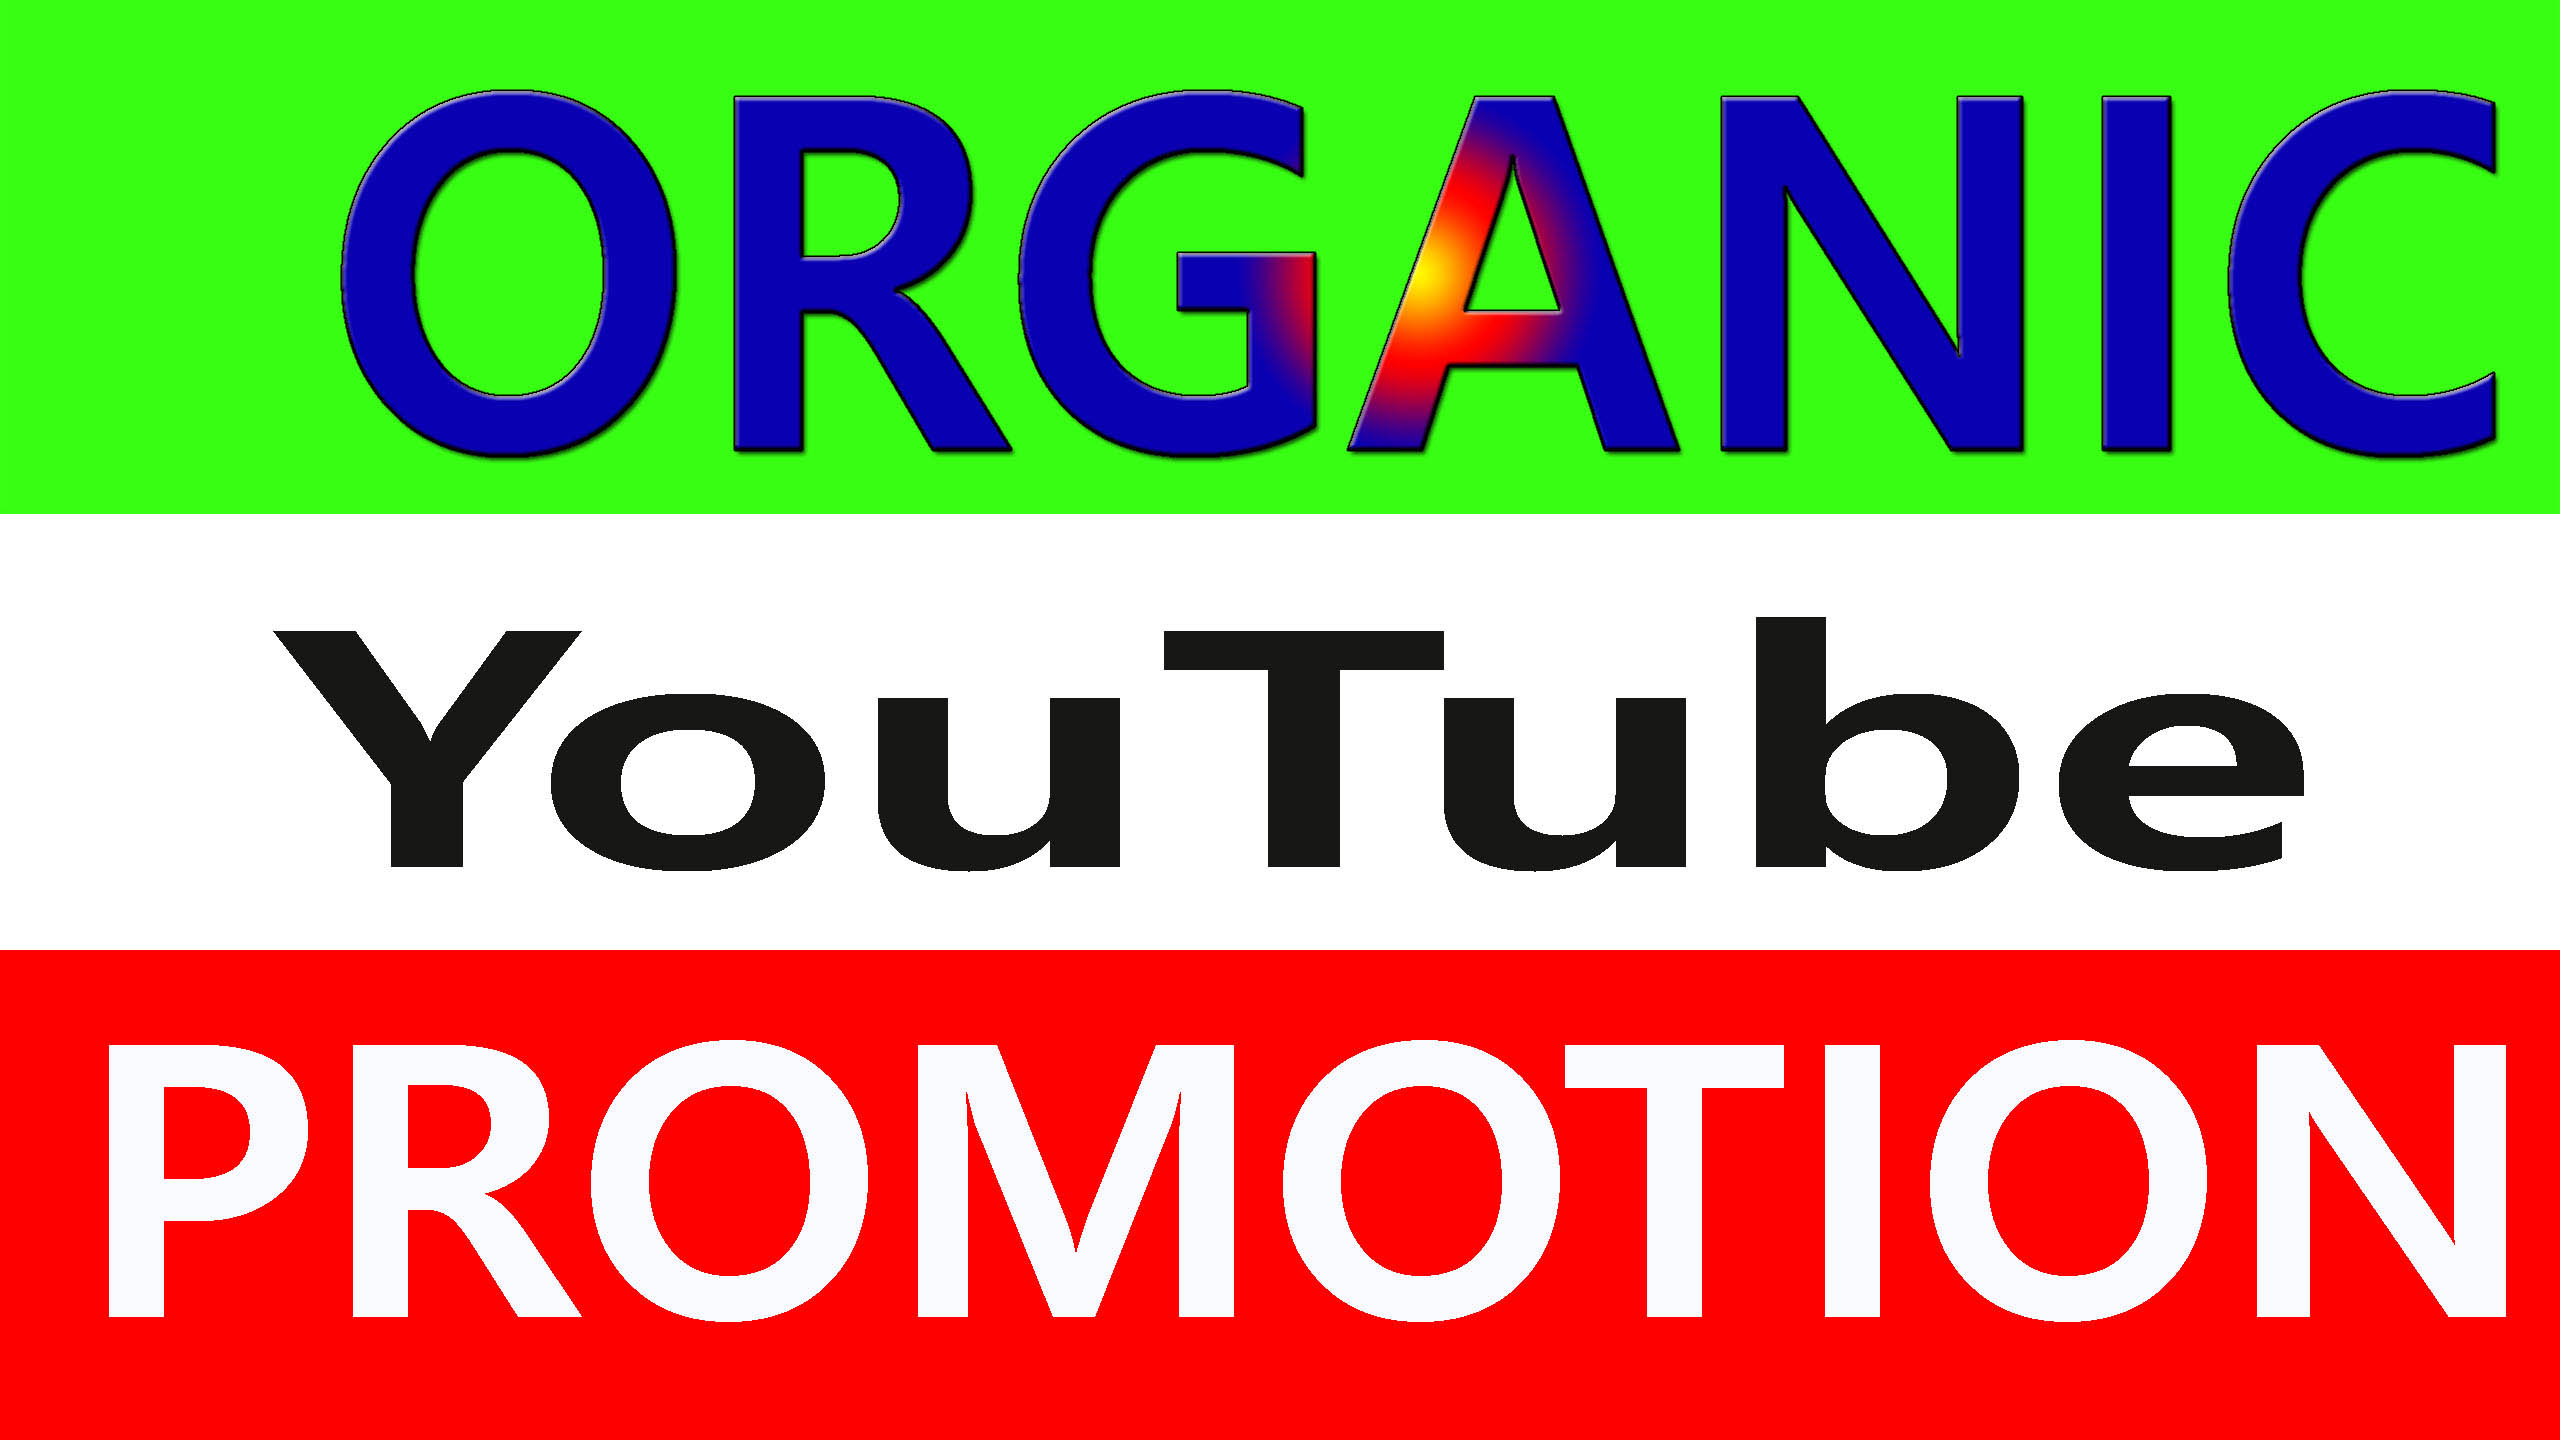 Super Fast High Quality YouTube Video and Chanel Promotion from real user